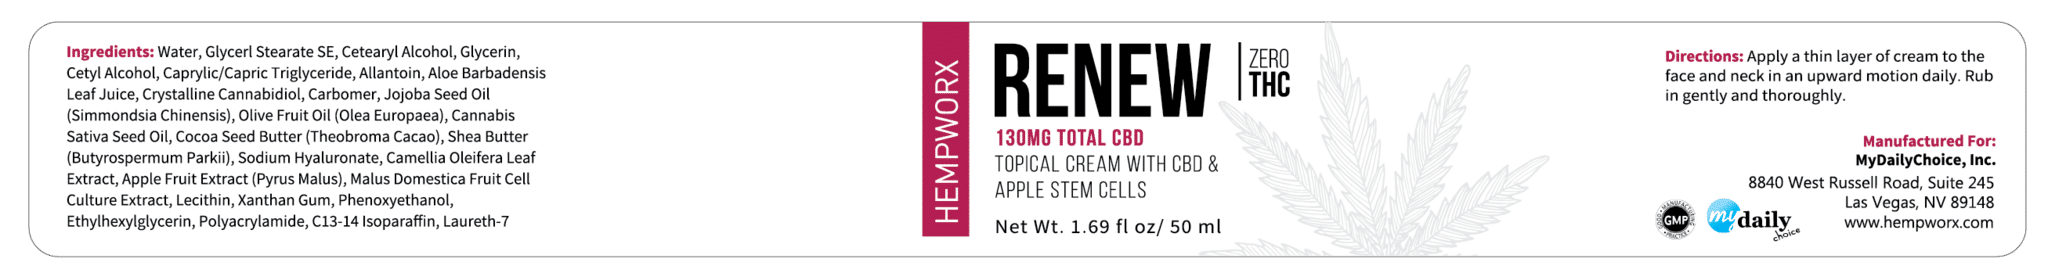 HempWorx Renew 50ml Product Label Ingredients